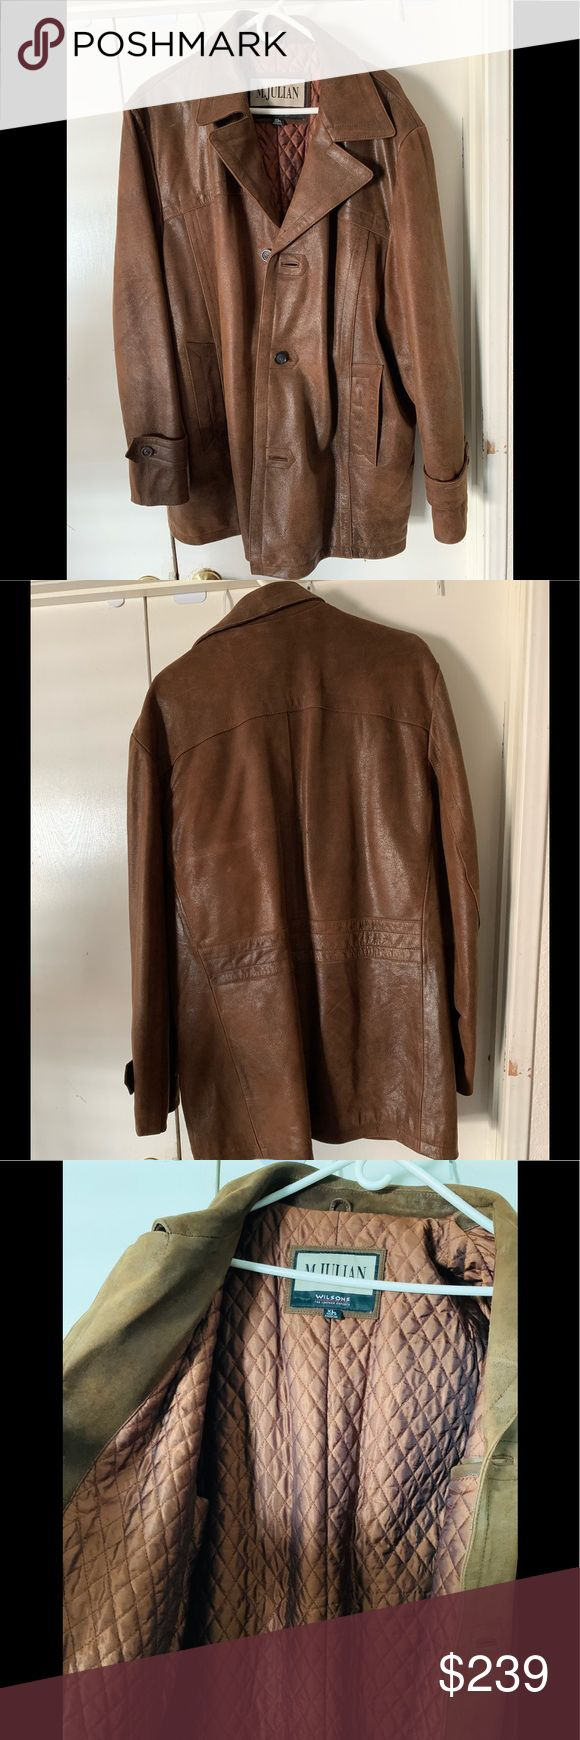 Wilsons Leather brown jacket w/ rabbit fur lining